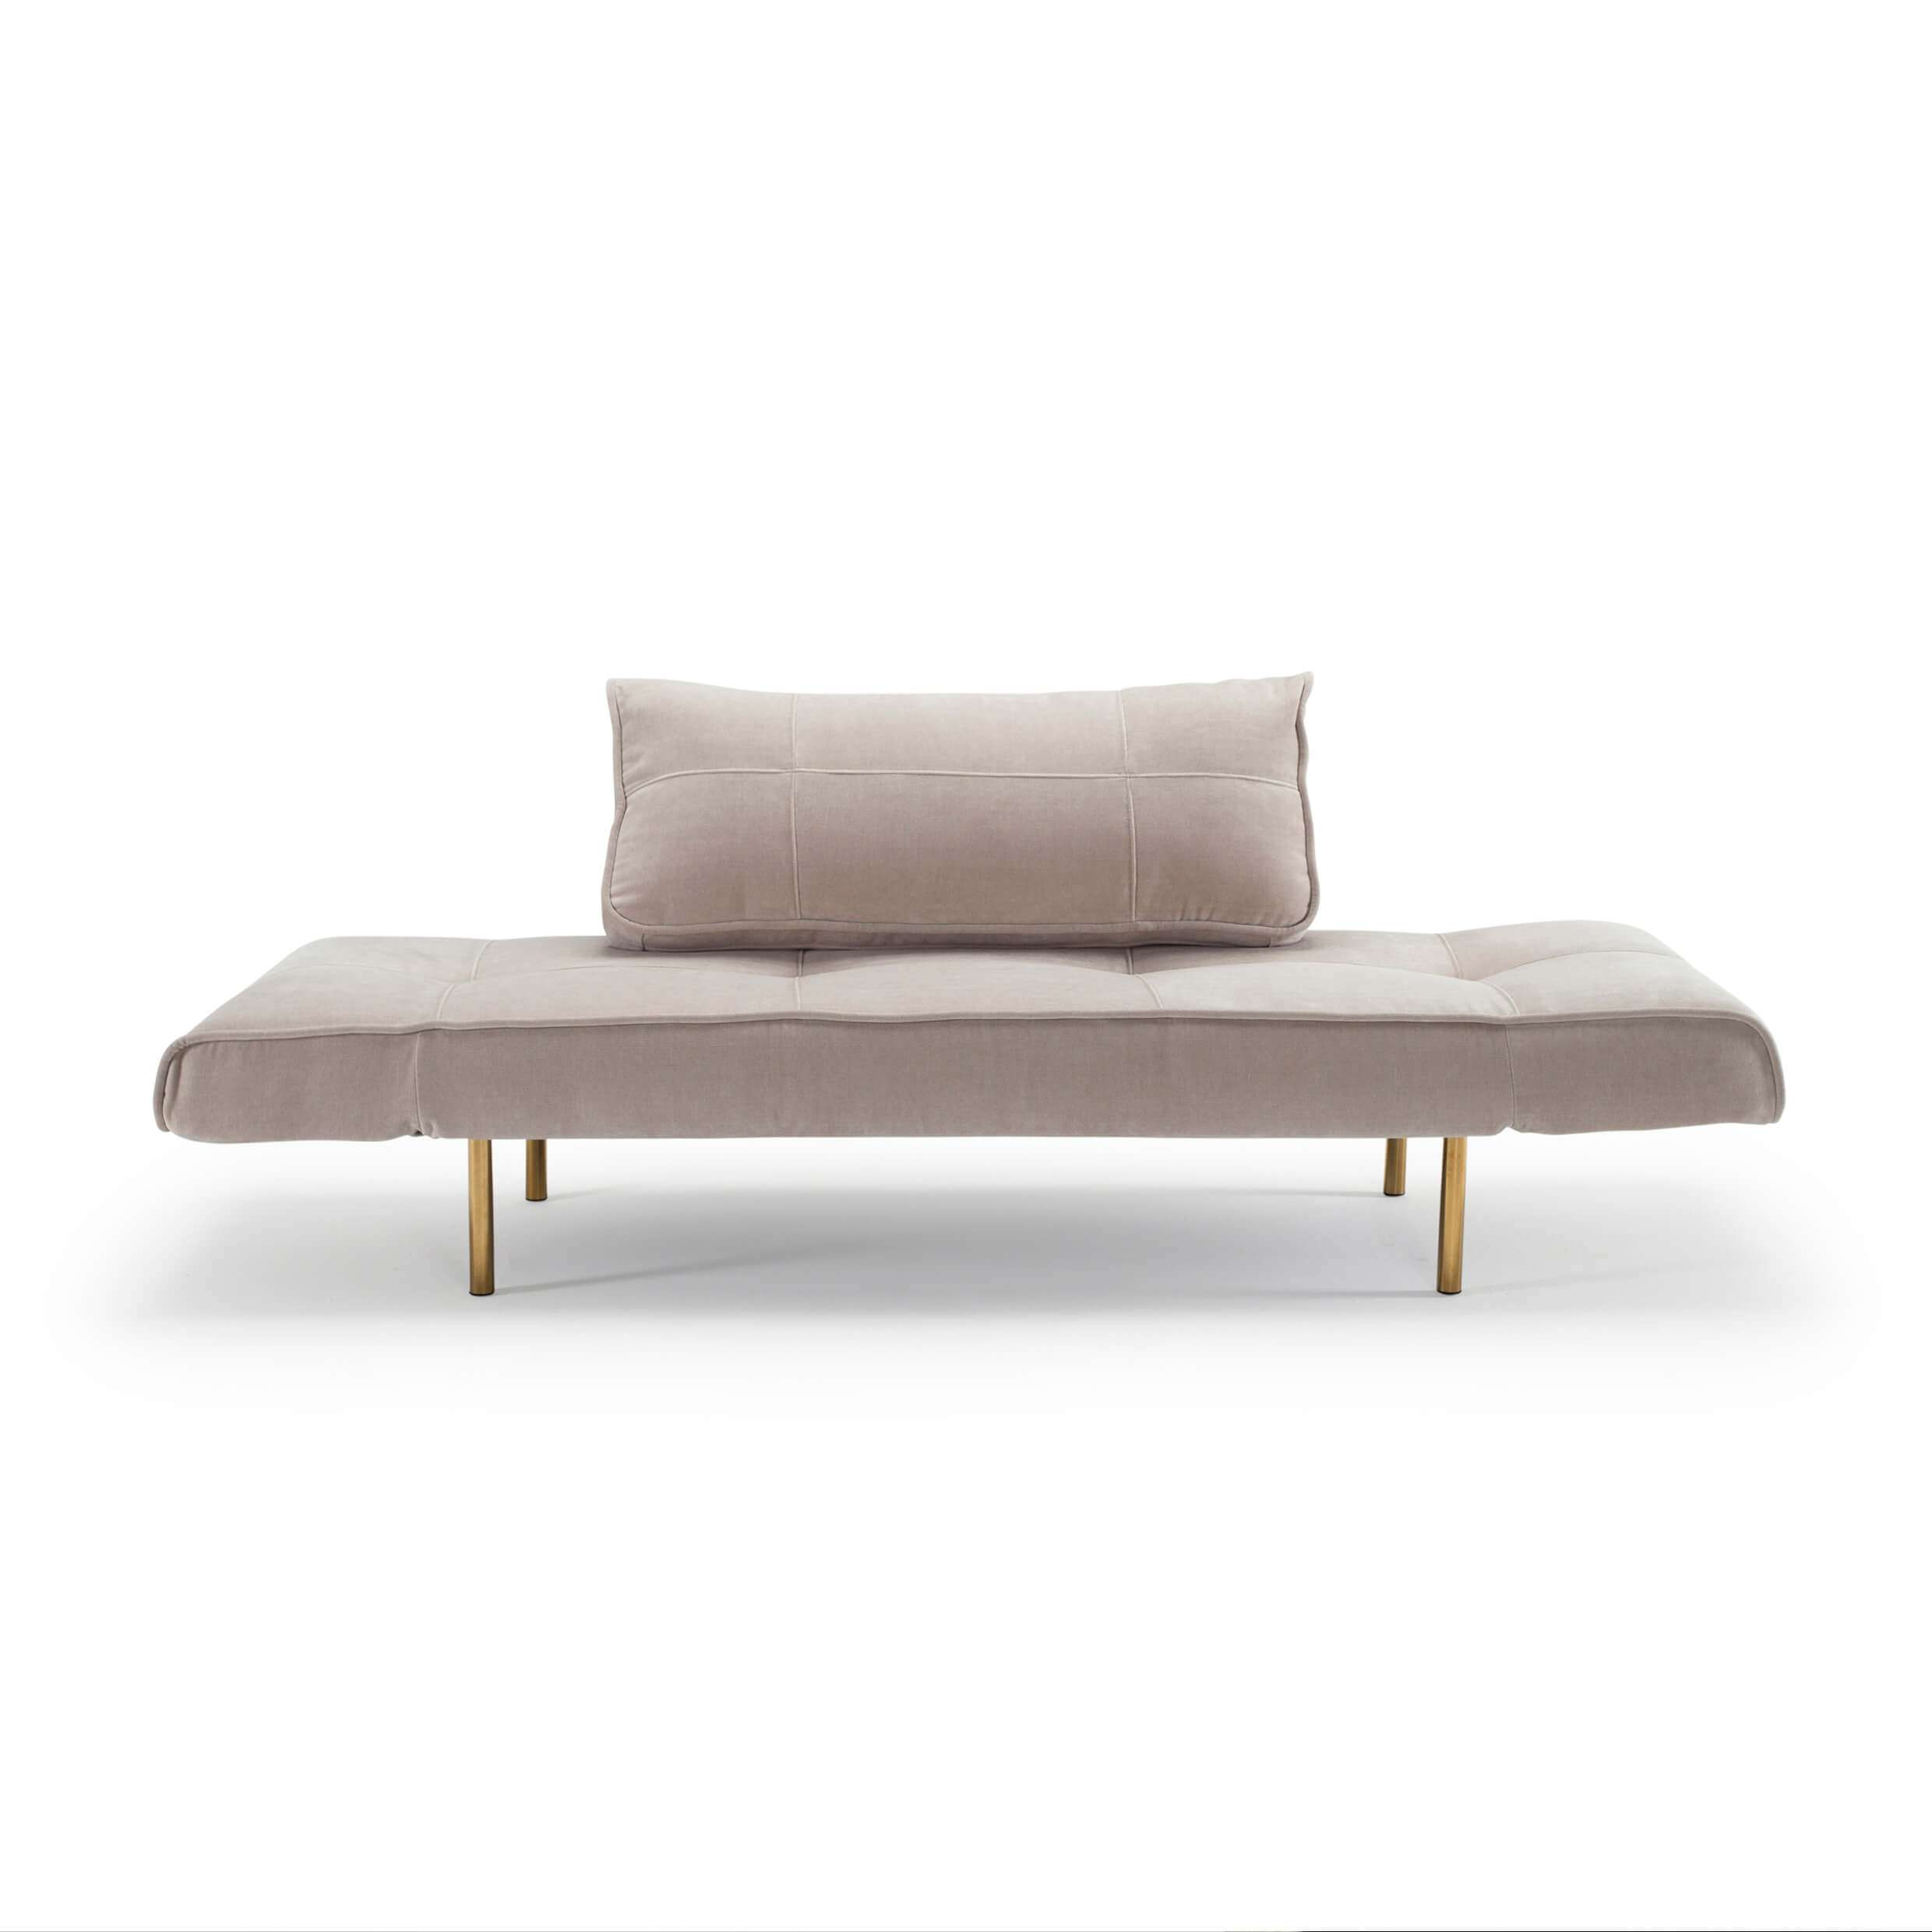 Daybed sofa front view